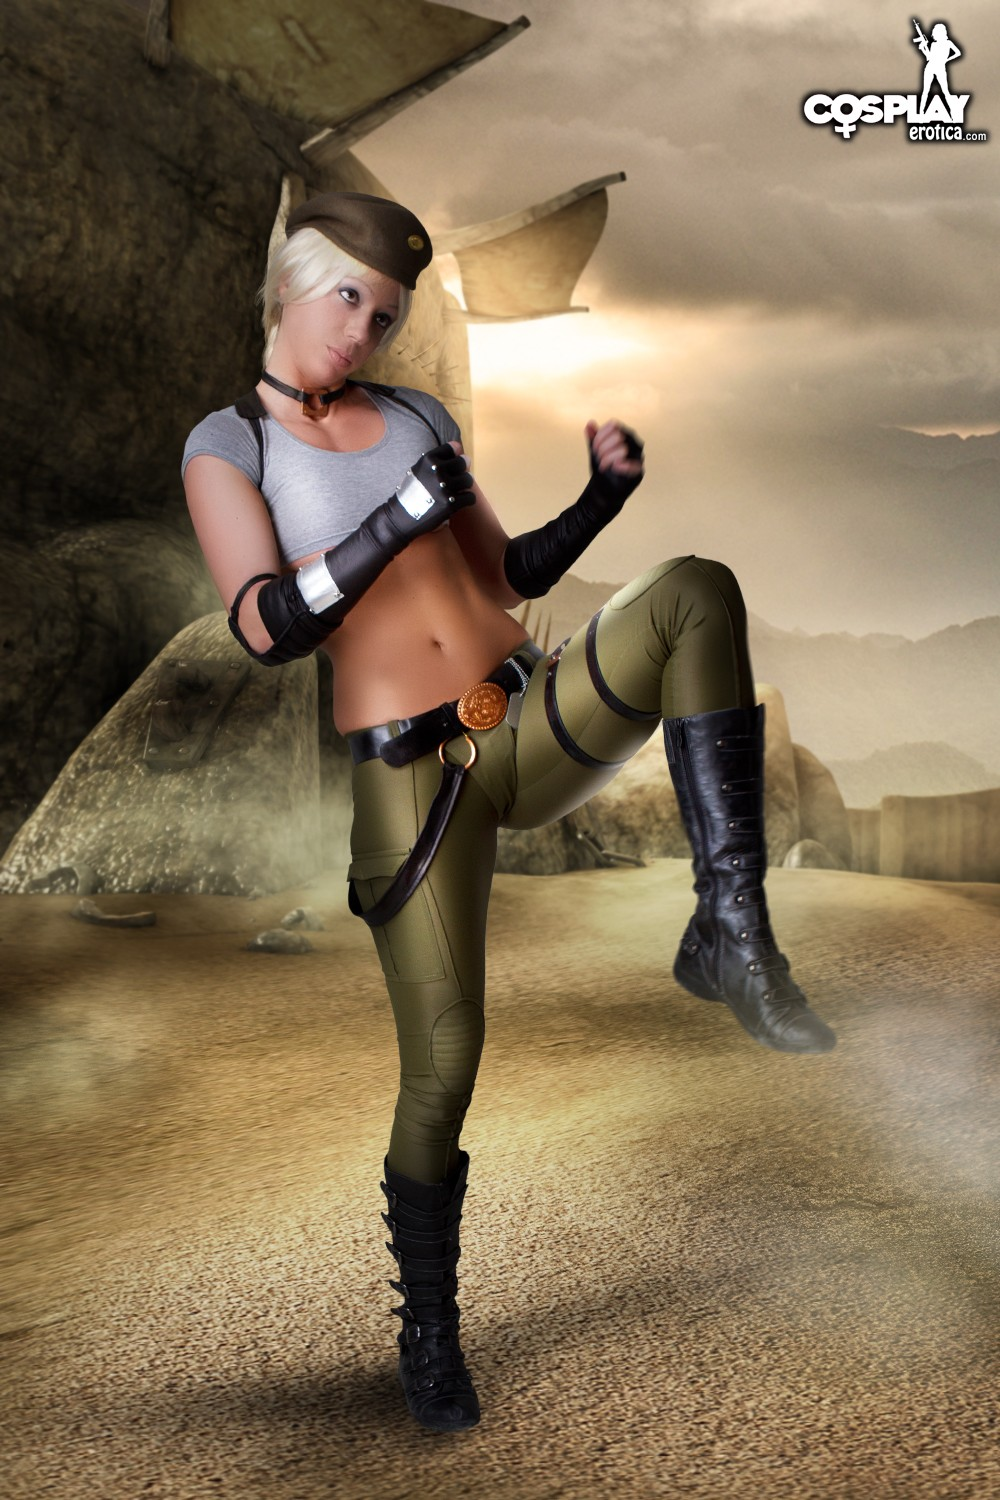 Mortal kombat 9 sonya blade nude costume adult galleries